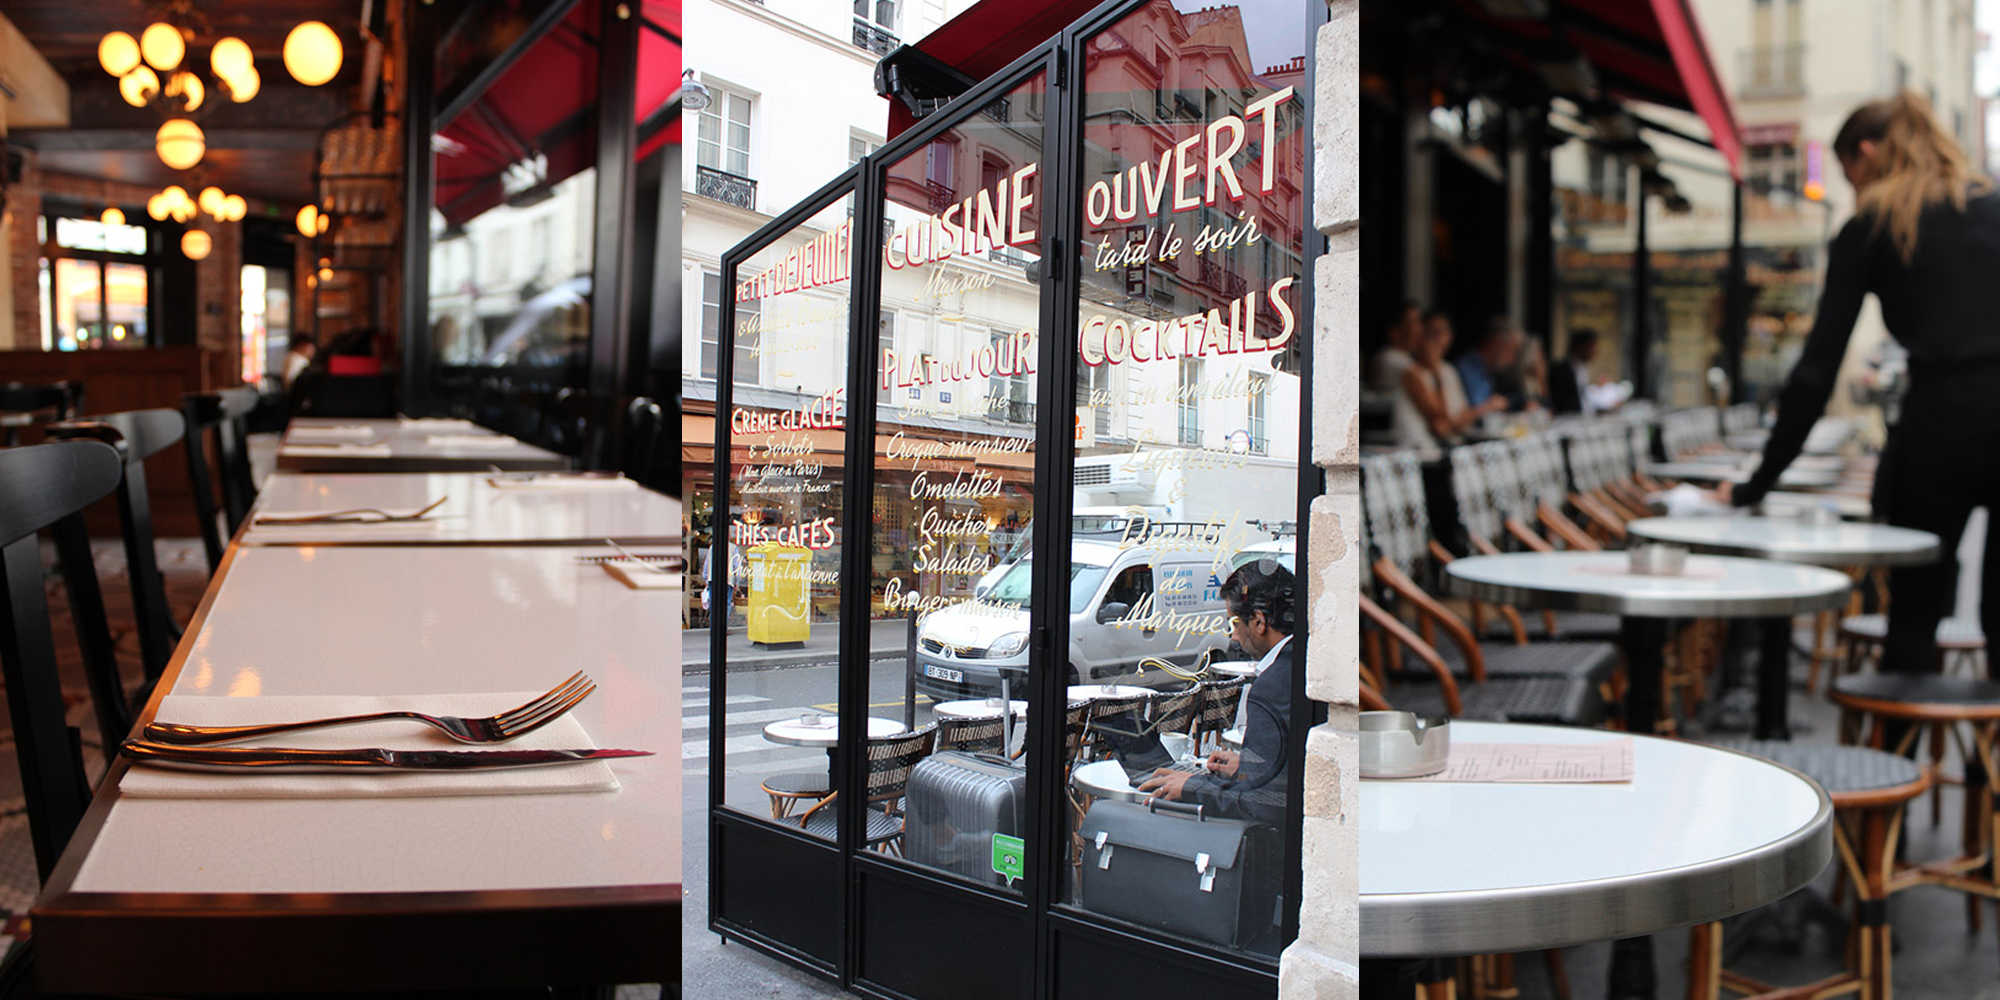 Brunch Café Buci (75006 Paris)